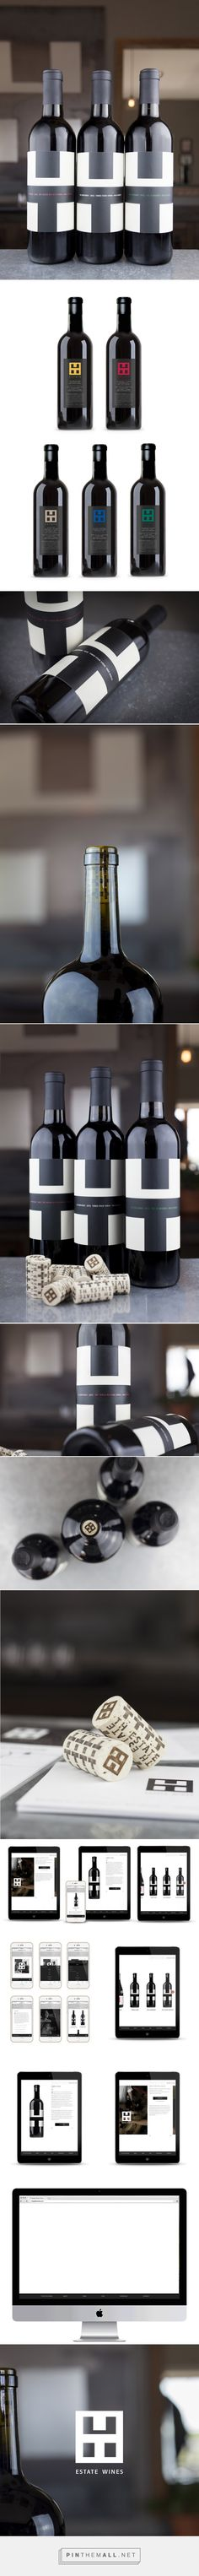 TH Estate Wines - Packaging of the World - Creative Package Design Gallery - http://www.packagingoftheworld.com/2016/01/th-estate-wines.html